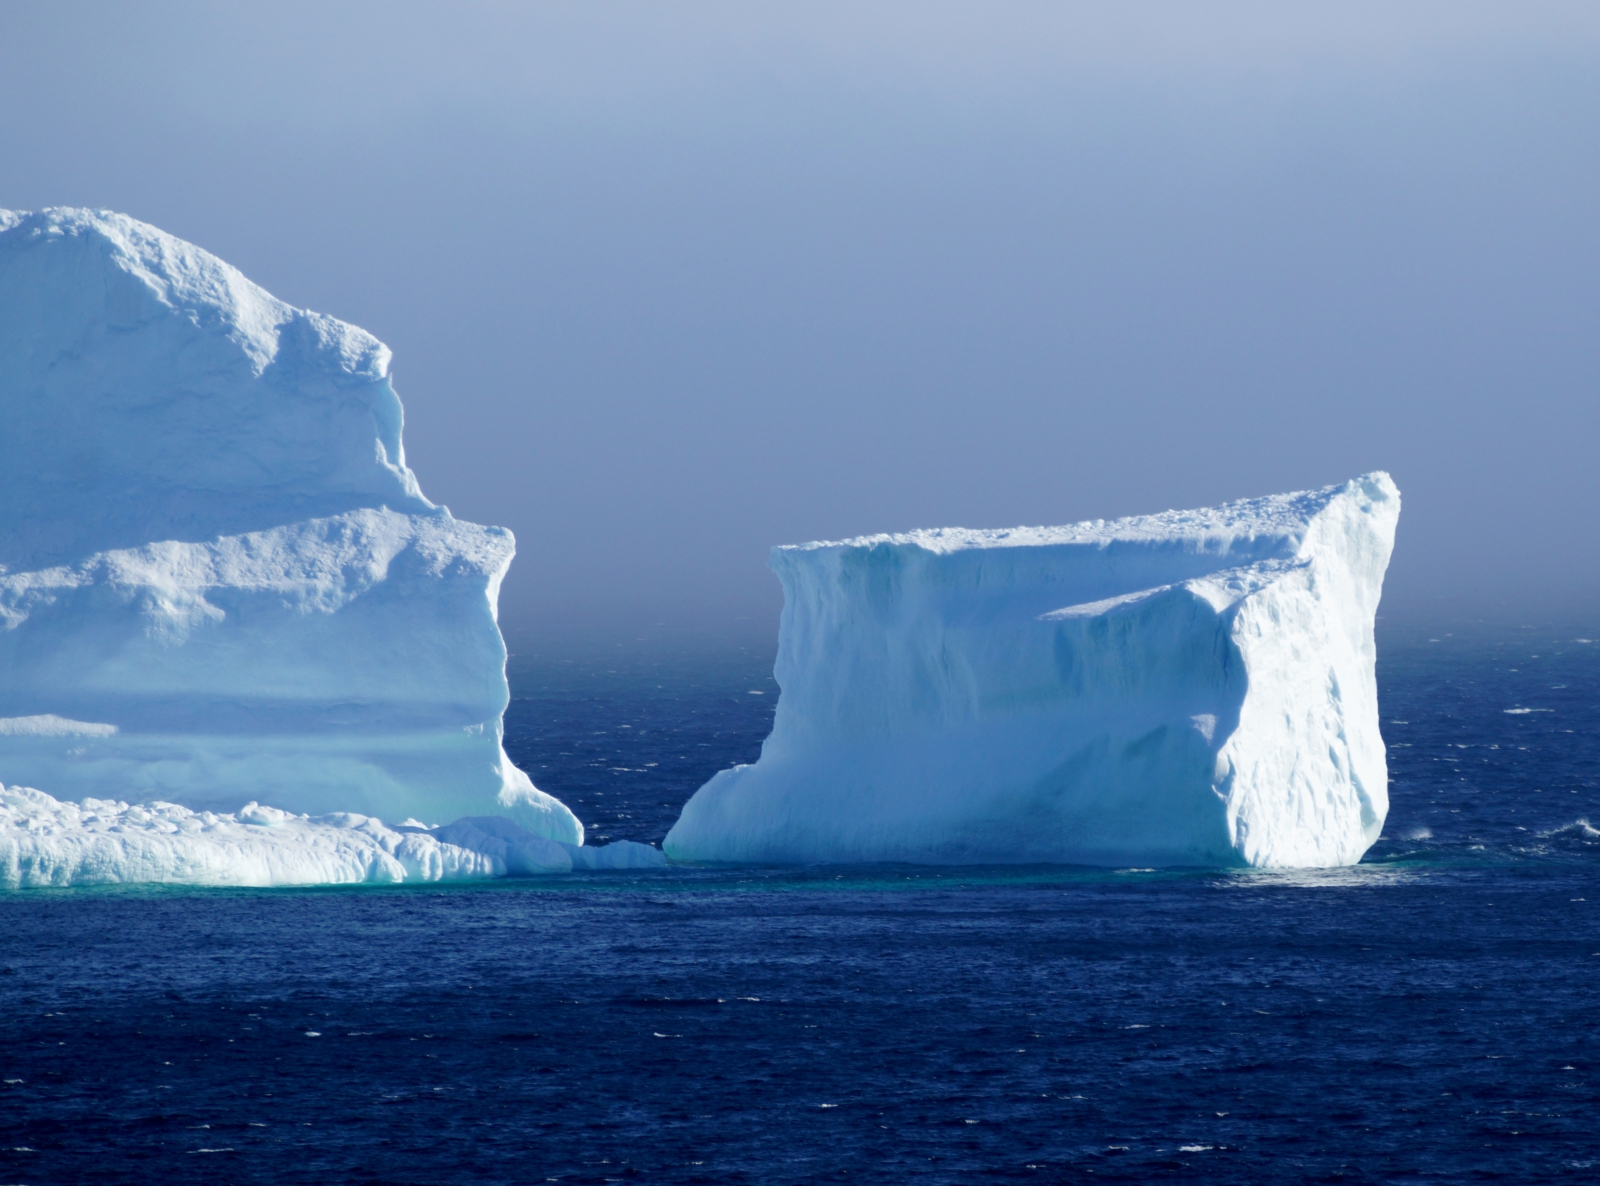 A Gigantic Iceberg Has Turned Up Off The Coast Of Canada